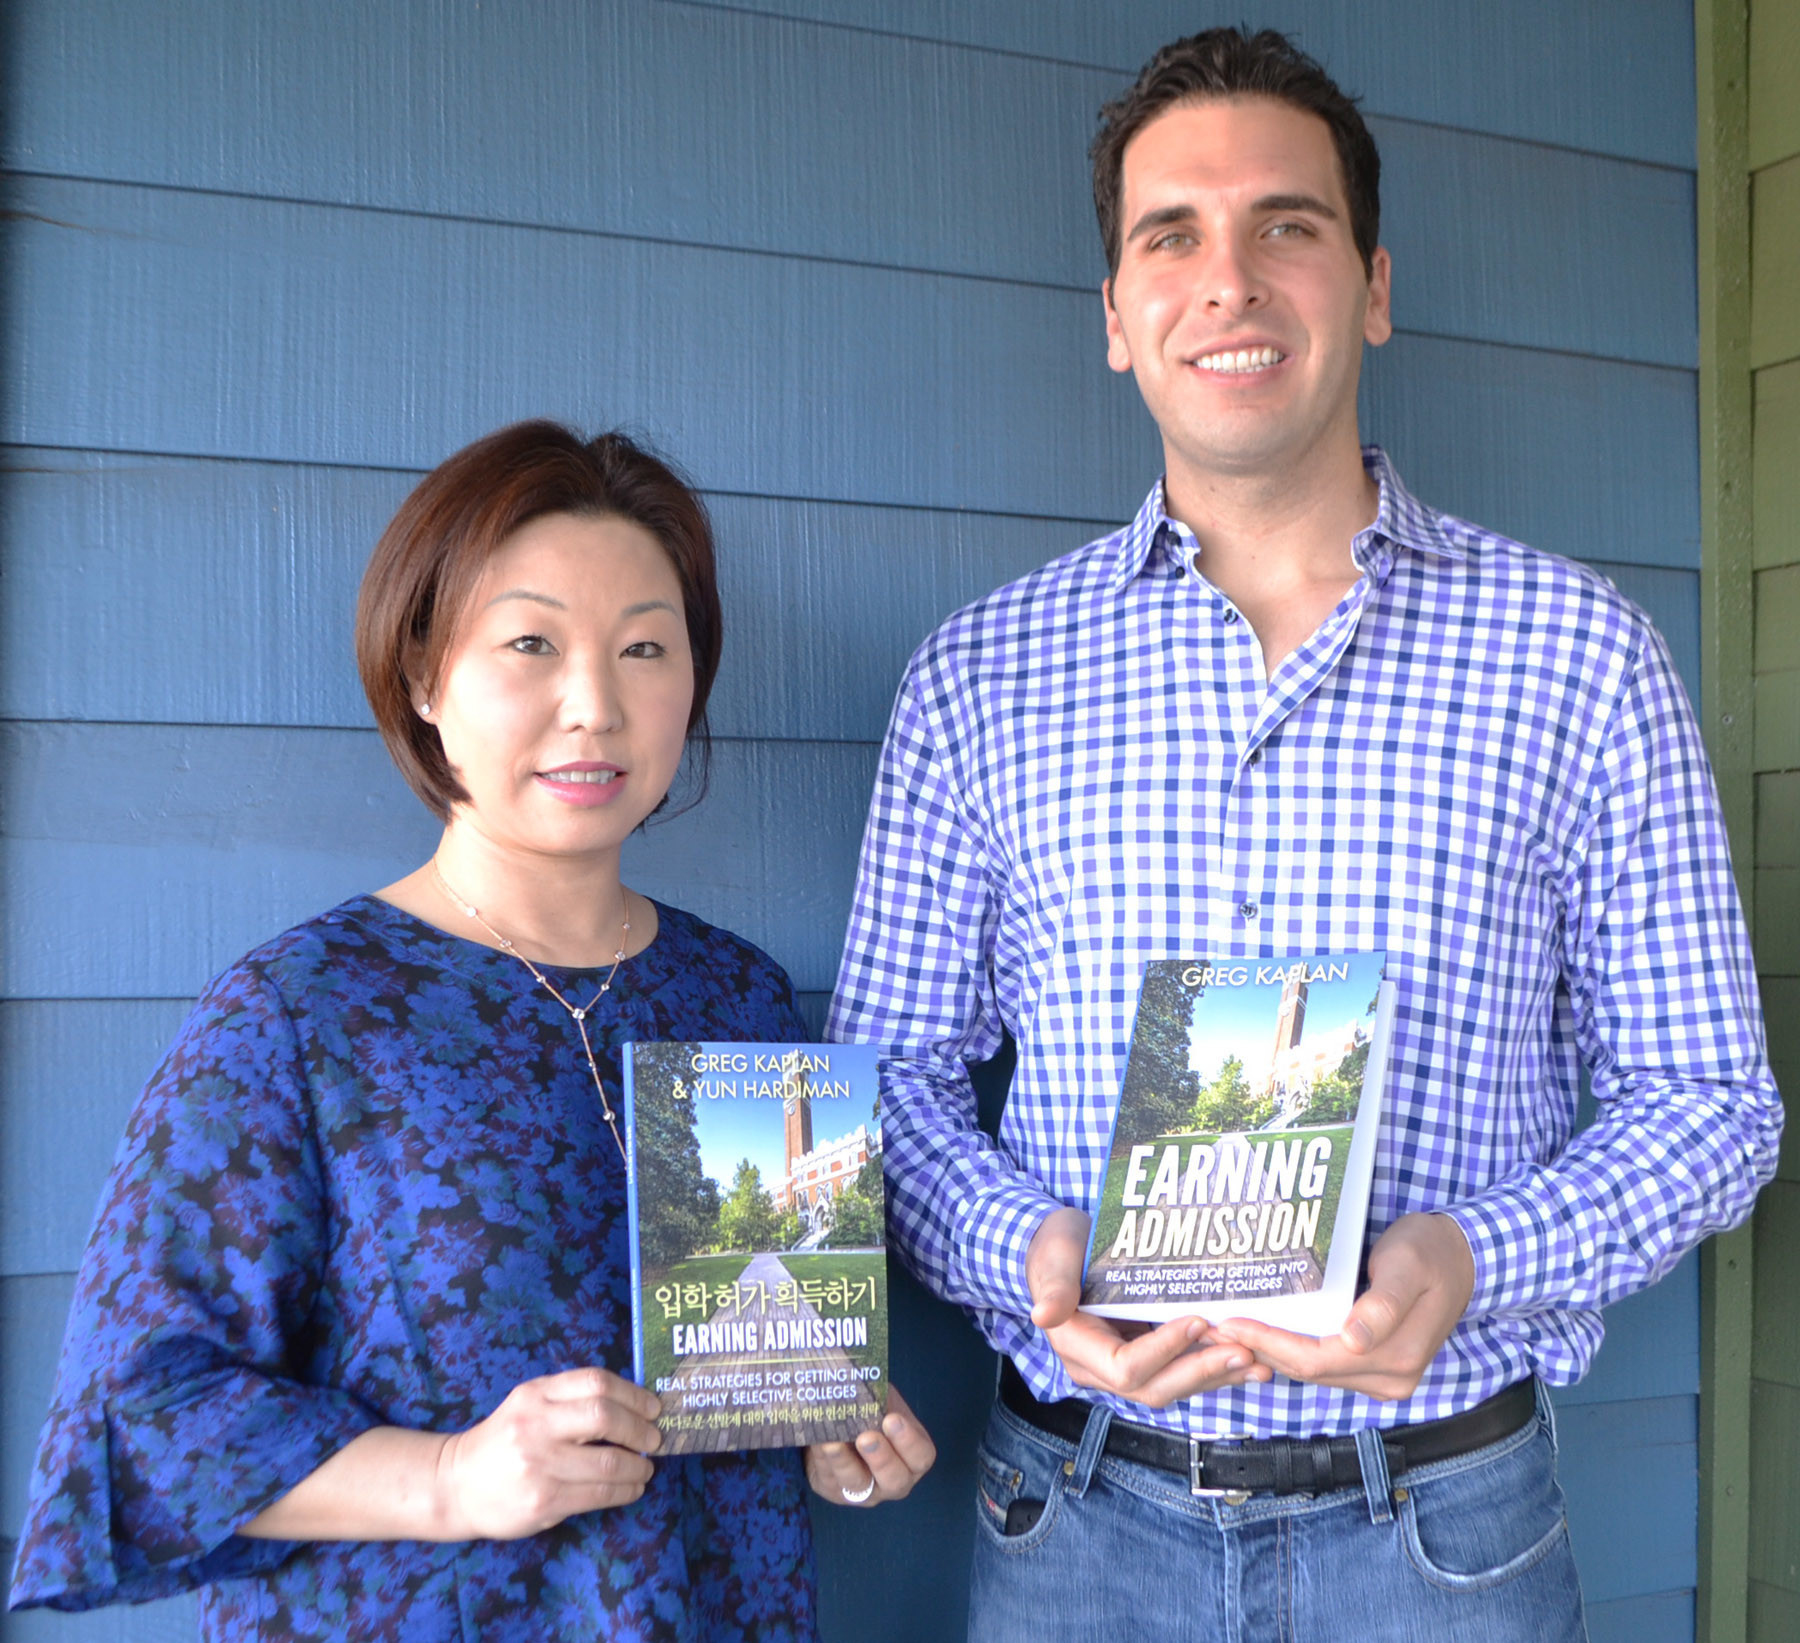 """Earning Admission"" authors Yun Hardiman and Greg Kaplan holding their Korean and English versions of their book, respectively."